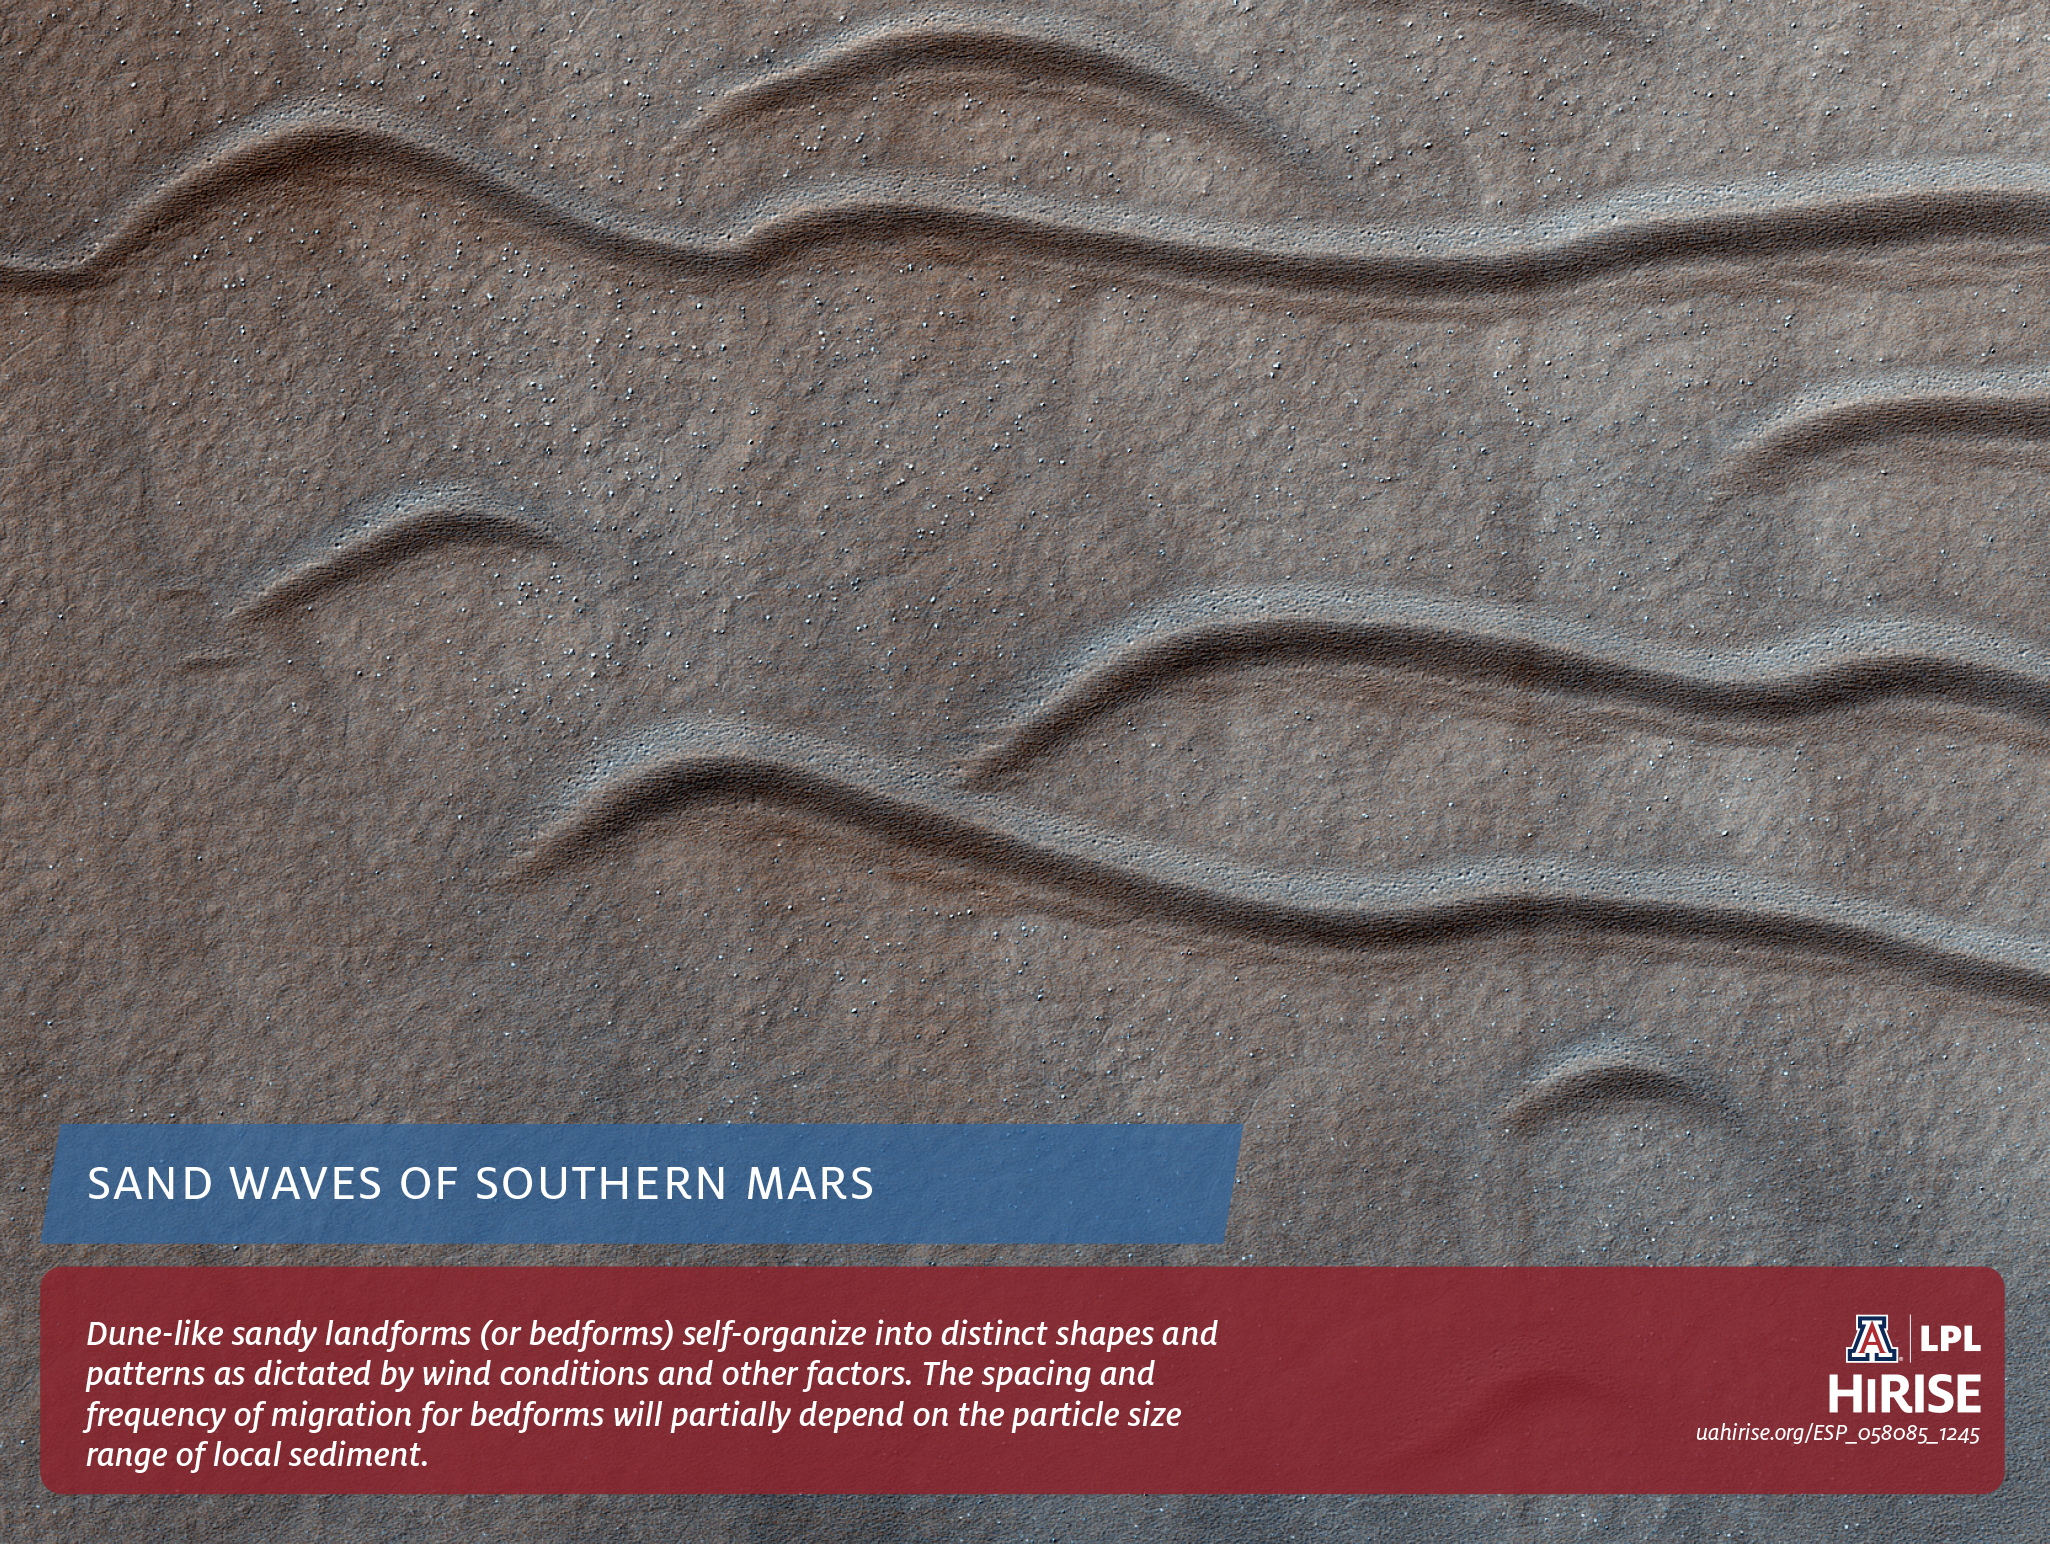 Sand Waves of Southern Mars